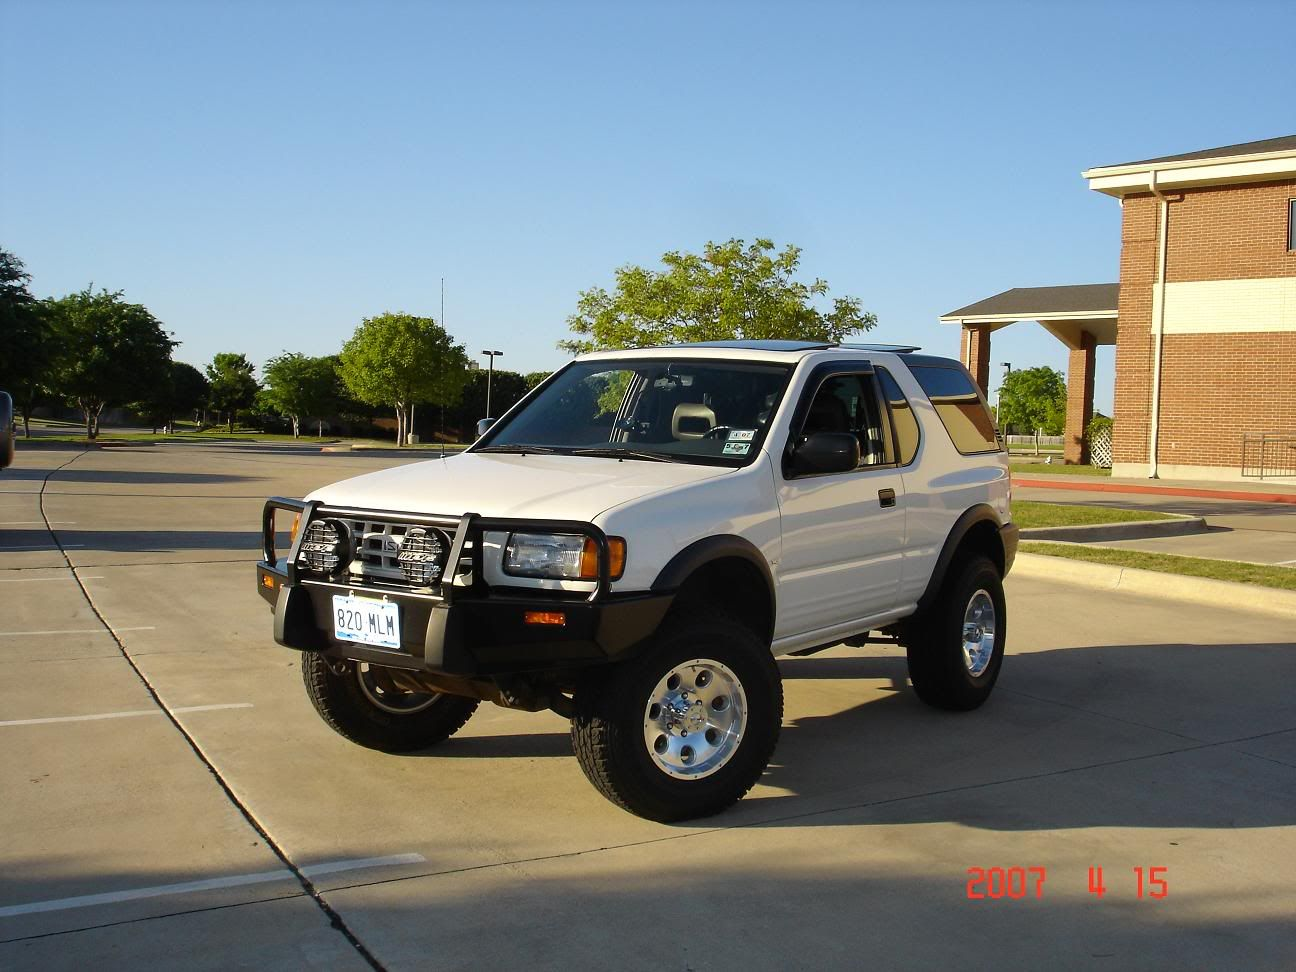 63 Isuzu Rodeo Trucks Ideas Rodeo Trucks Honda Passport